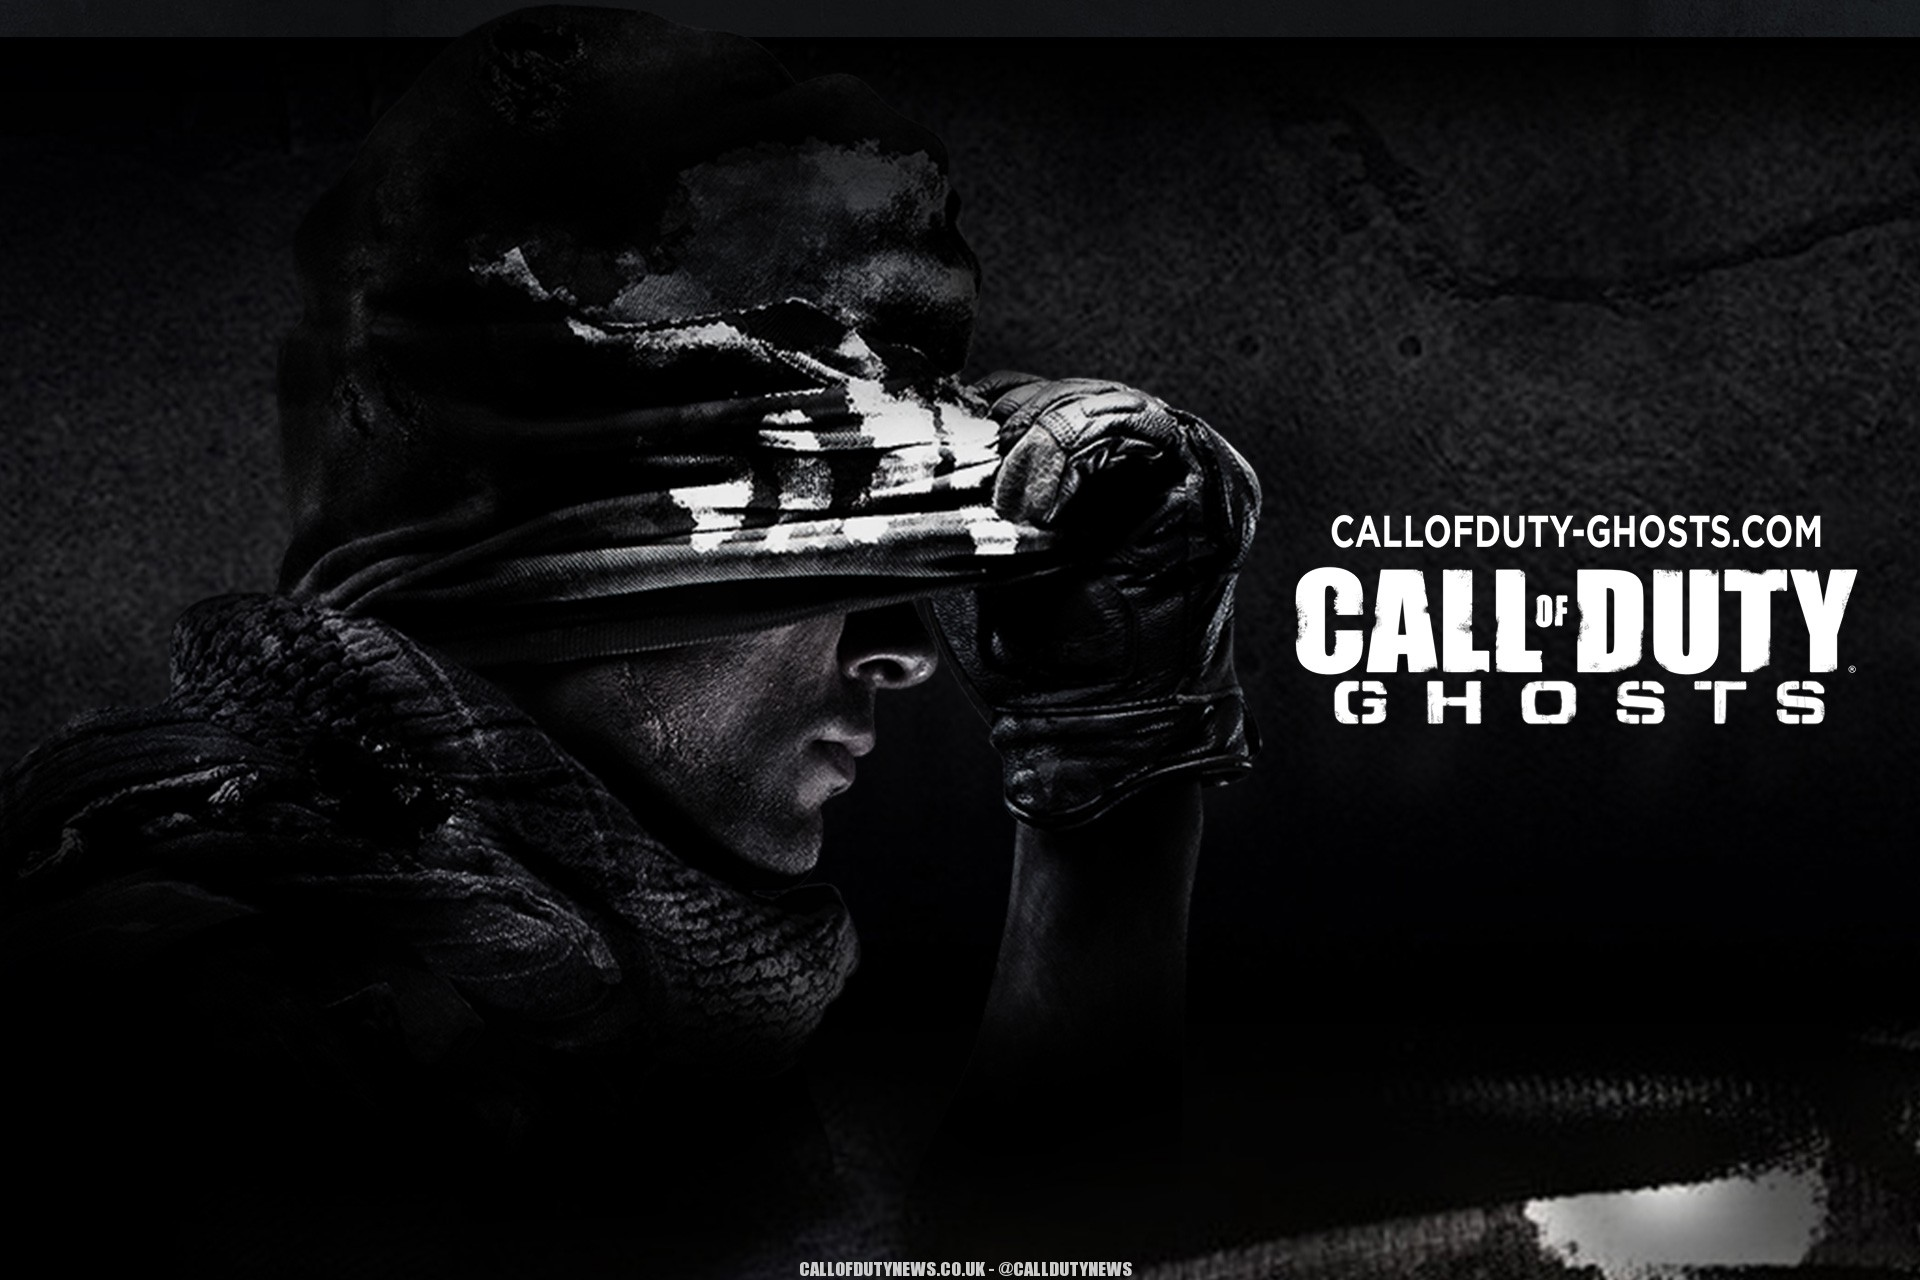 Cod Call Of Duty Ghosts Wallpaper 12 Destroyrepeat Destroy Repeat